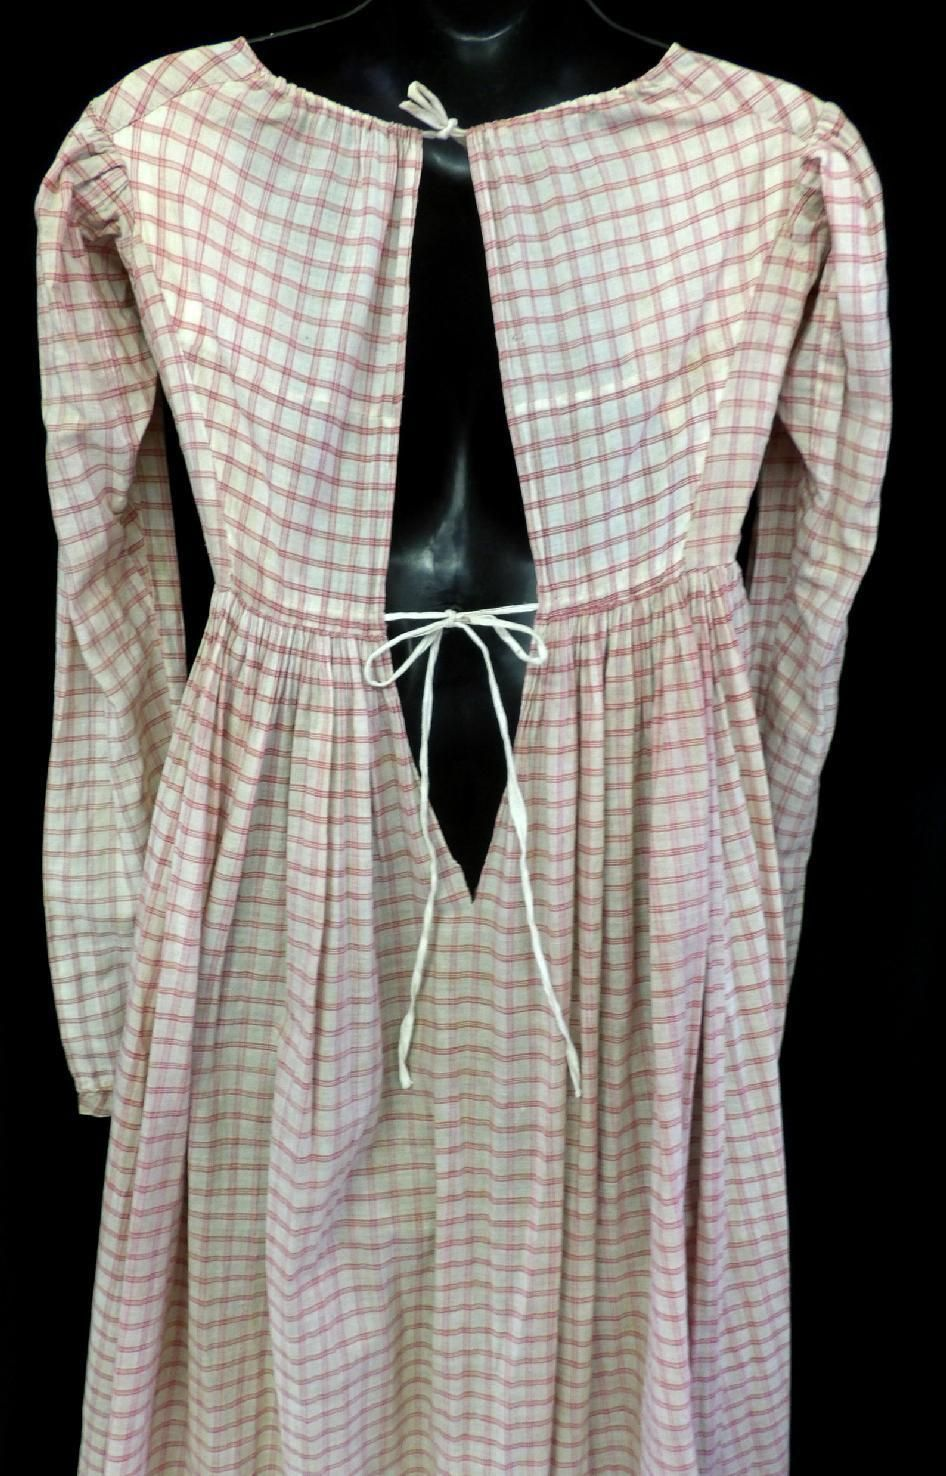 X RARE ANTIQUE 1810 REGENCY EMPIRE RED CHECK COTTON GOWN DAY DRESS FAB CONDITION | eBay - I think it's on backwards